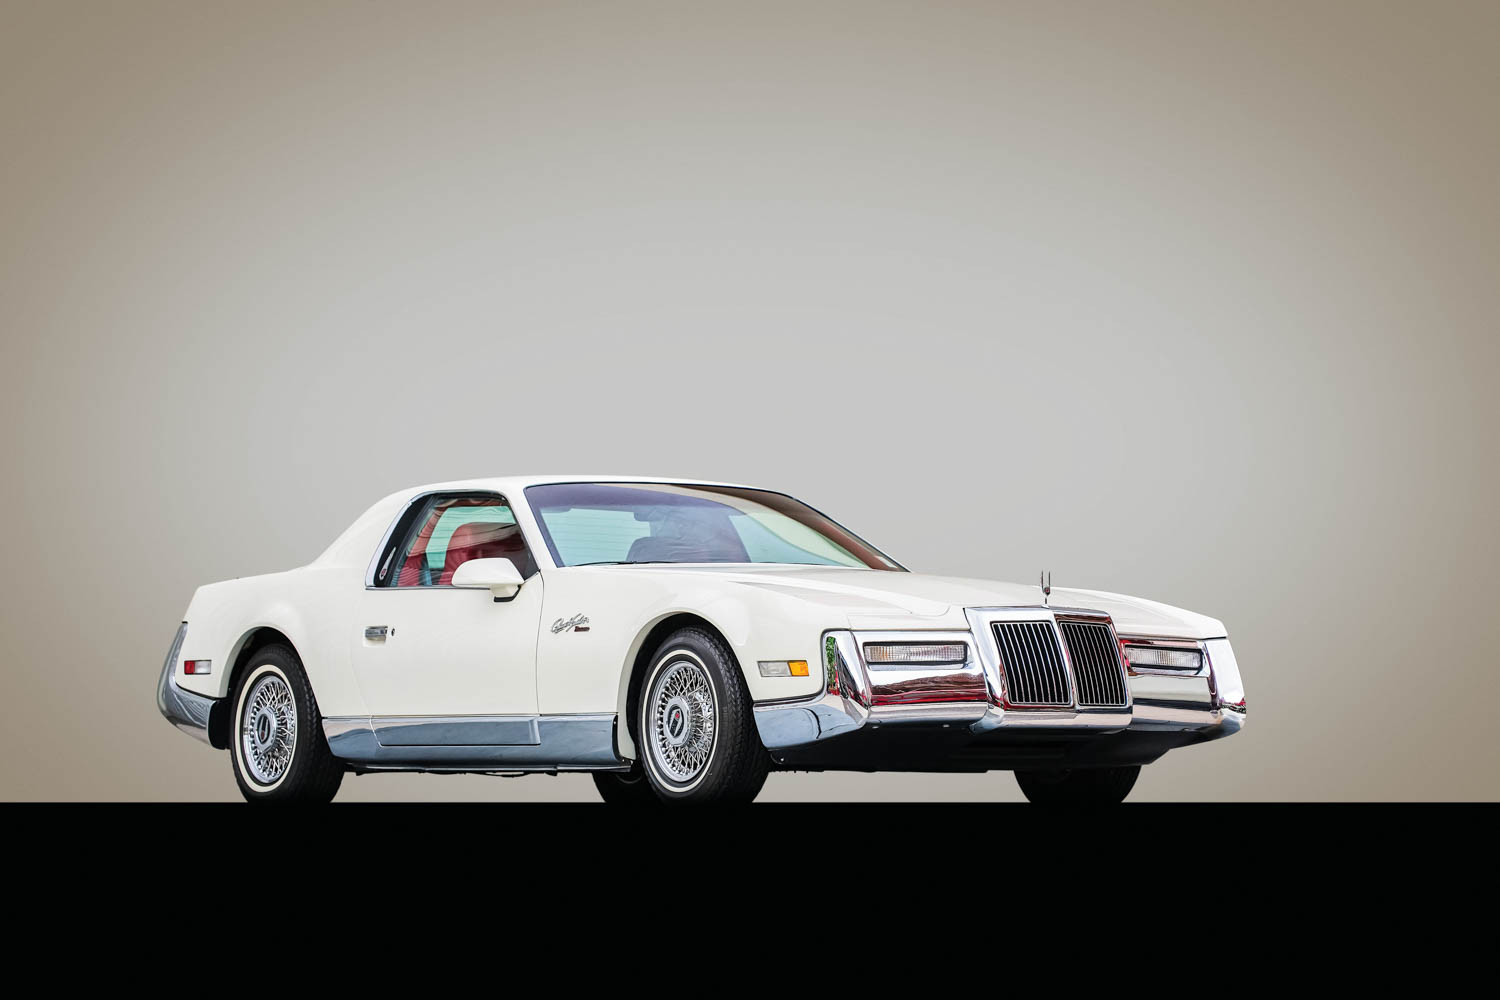 1986 Zimmer Quicksilver RM Sotheby's